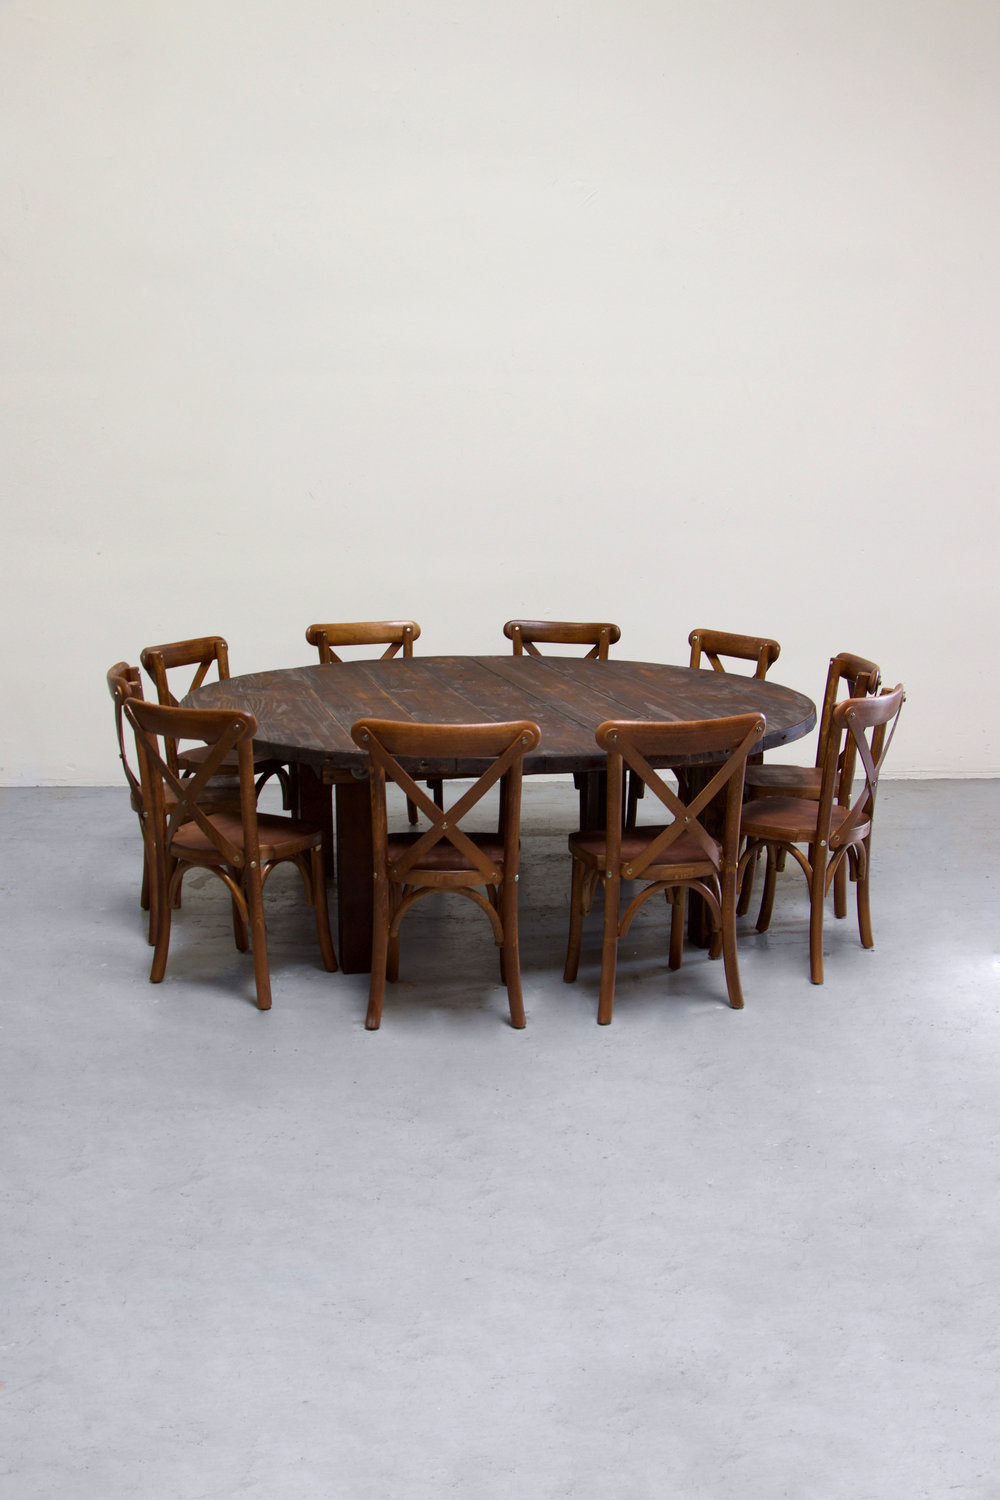 $135 1 Kids Mahogany Round Farm Table w/ 10 Cross-Back Chairs